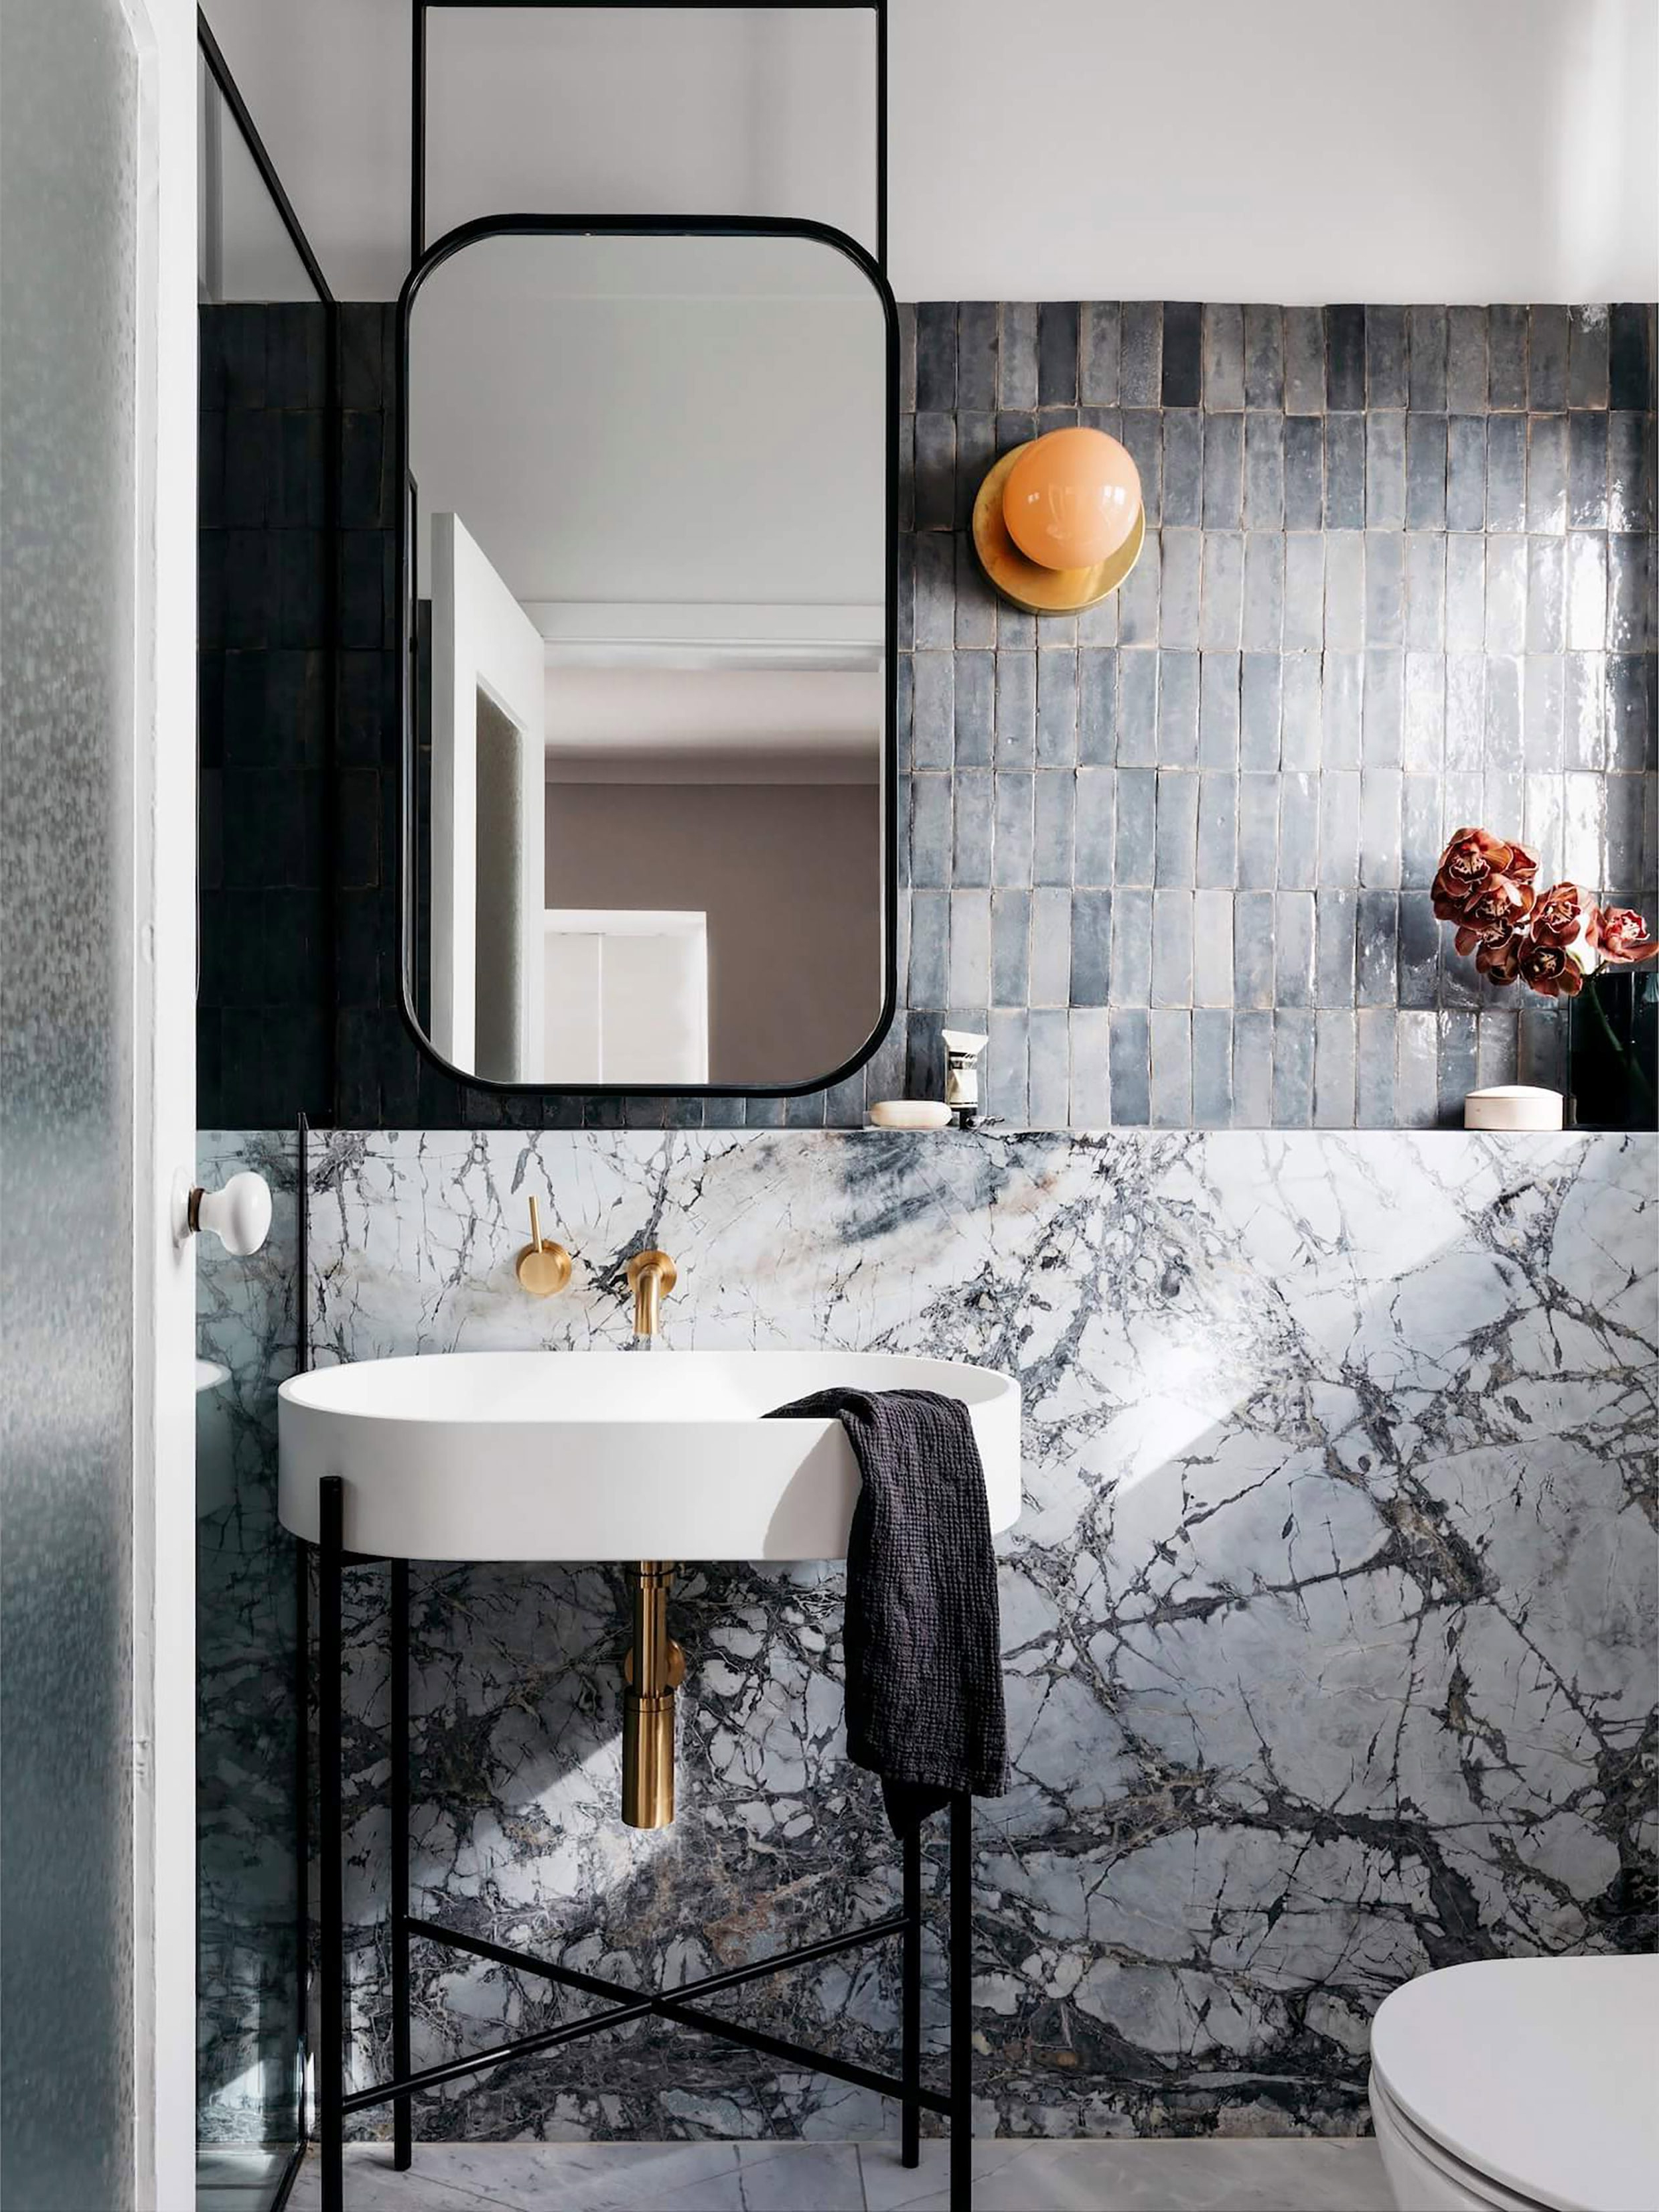 17 Fresh & Inspiring Bathroom Mirror Ideas To Shake Up Your Morning With 2019 Hanging Wall Mirrors For Bathroom (Gallery 1 of 20)